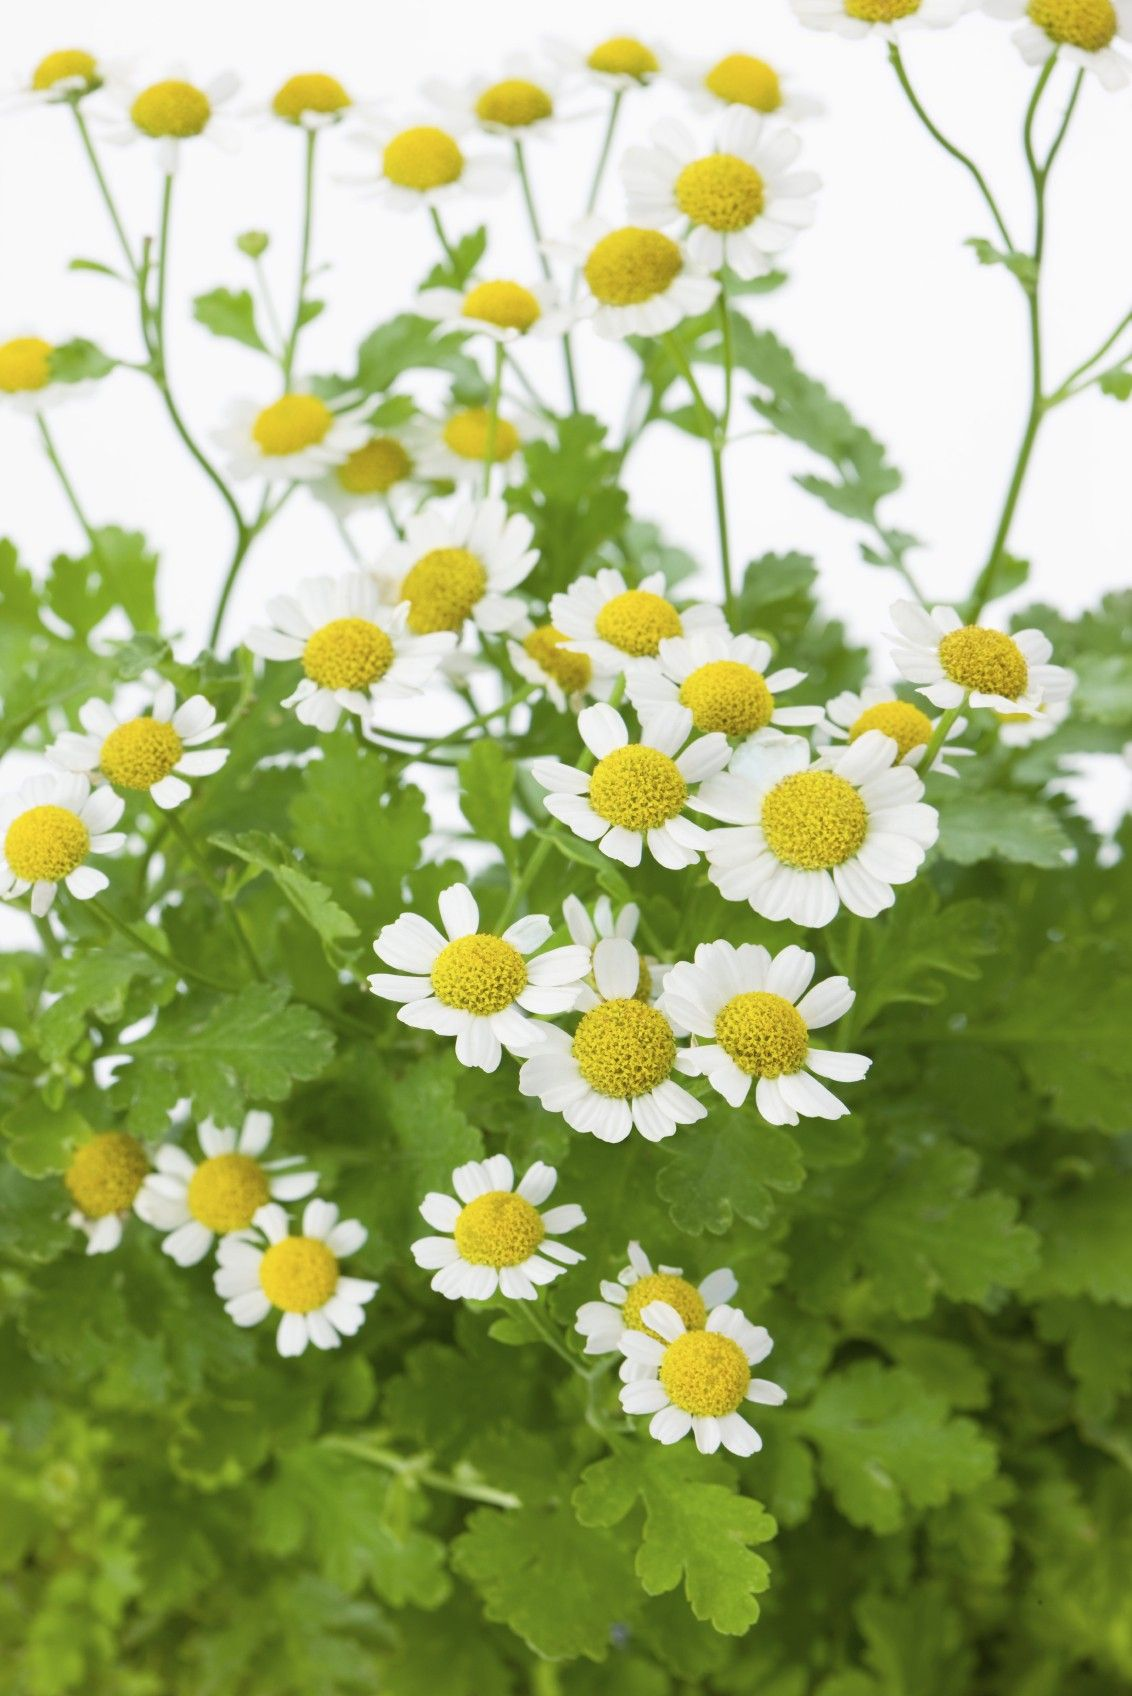 Feverfew Plant Harvesting Learn When To Harvest Feverfew Leaves Feverfew Plant Herbs Medicinal Plants